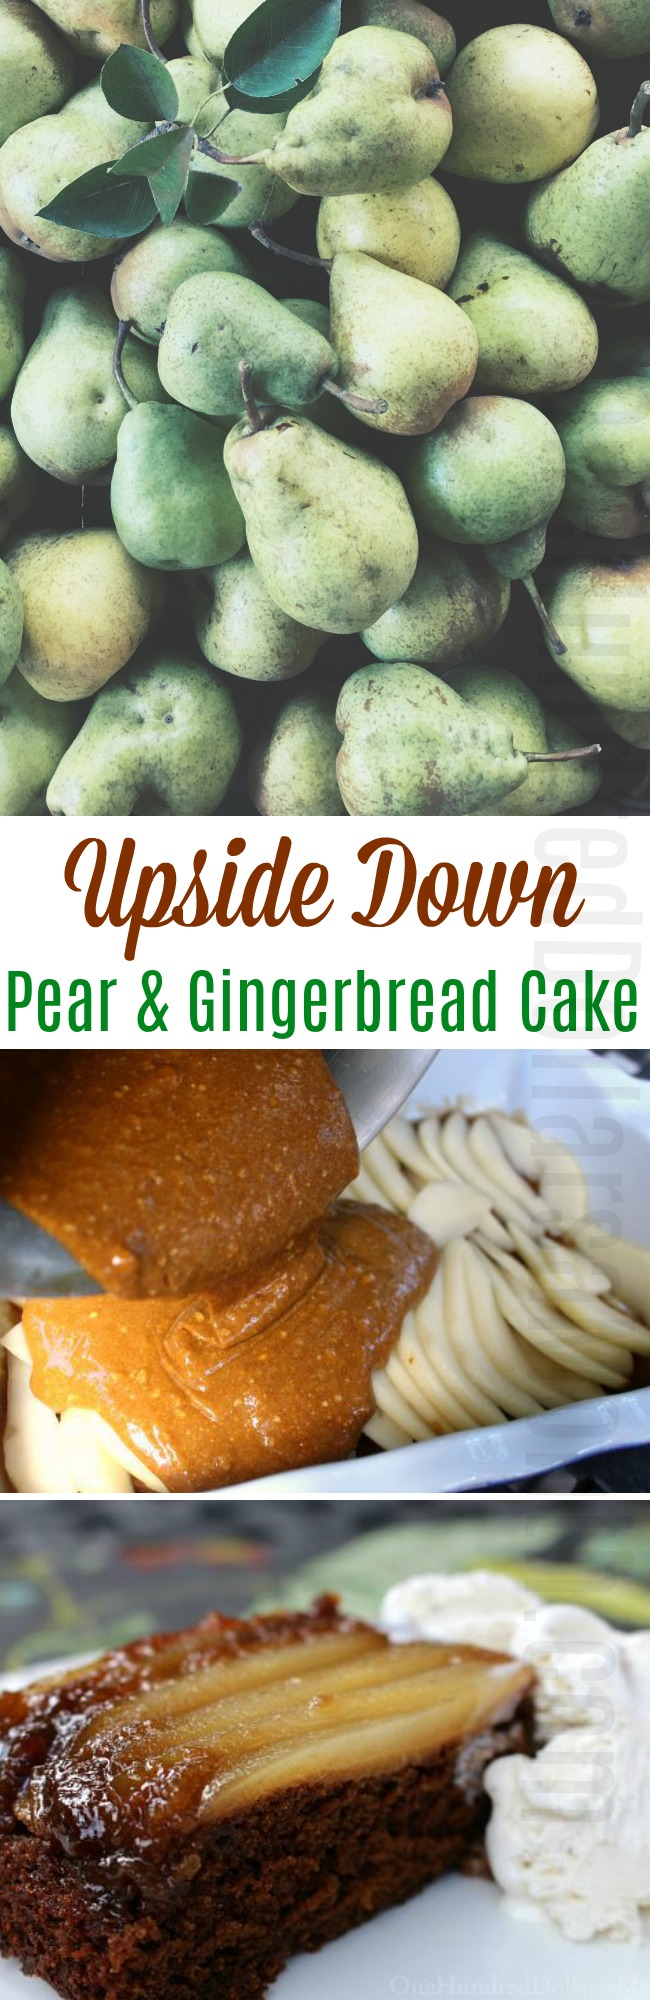 Upside Down Pear-Gingerbread Cake